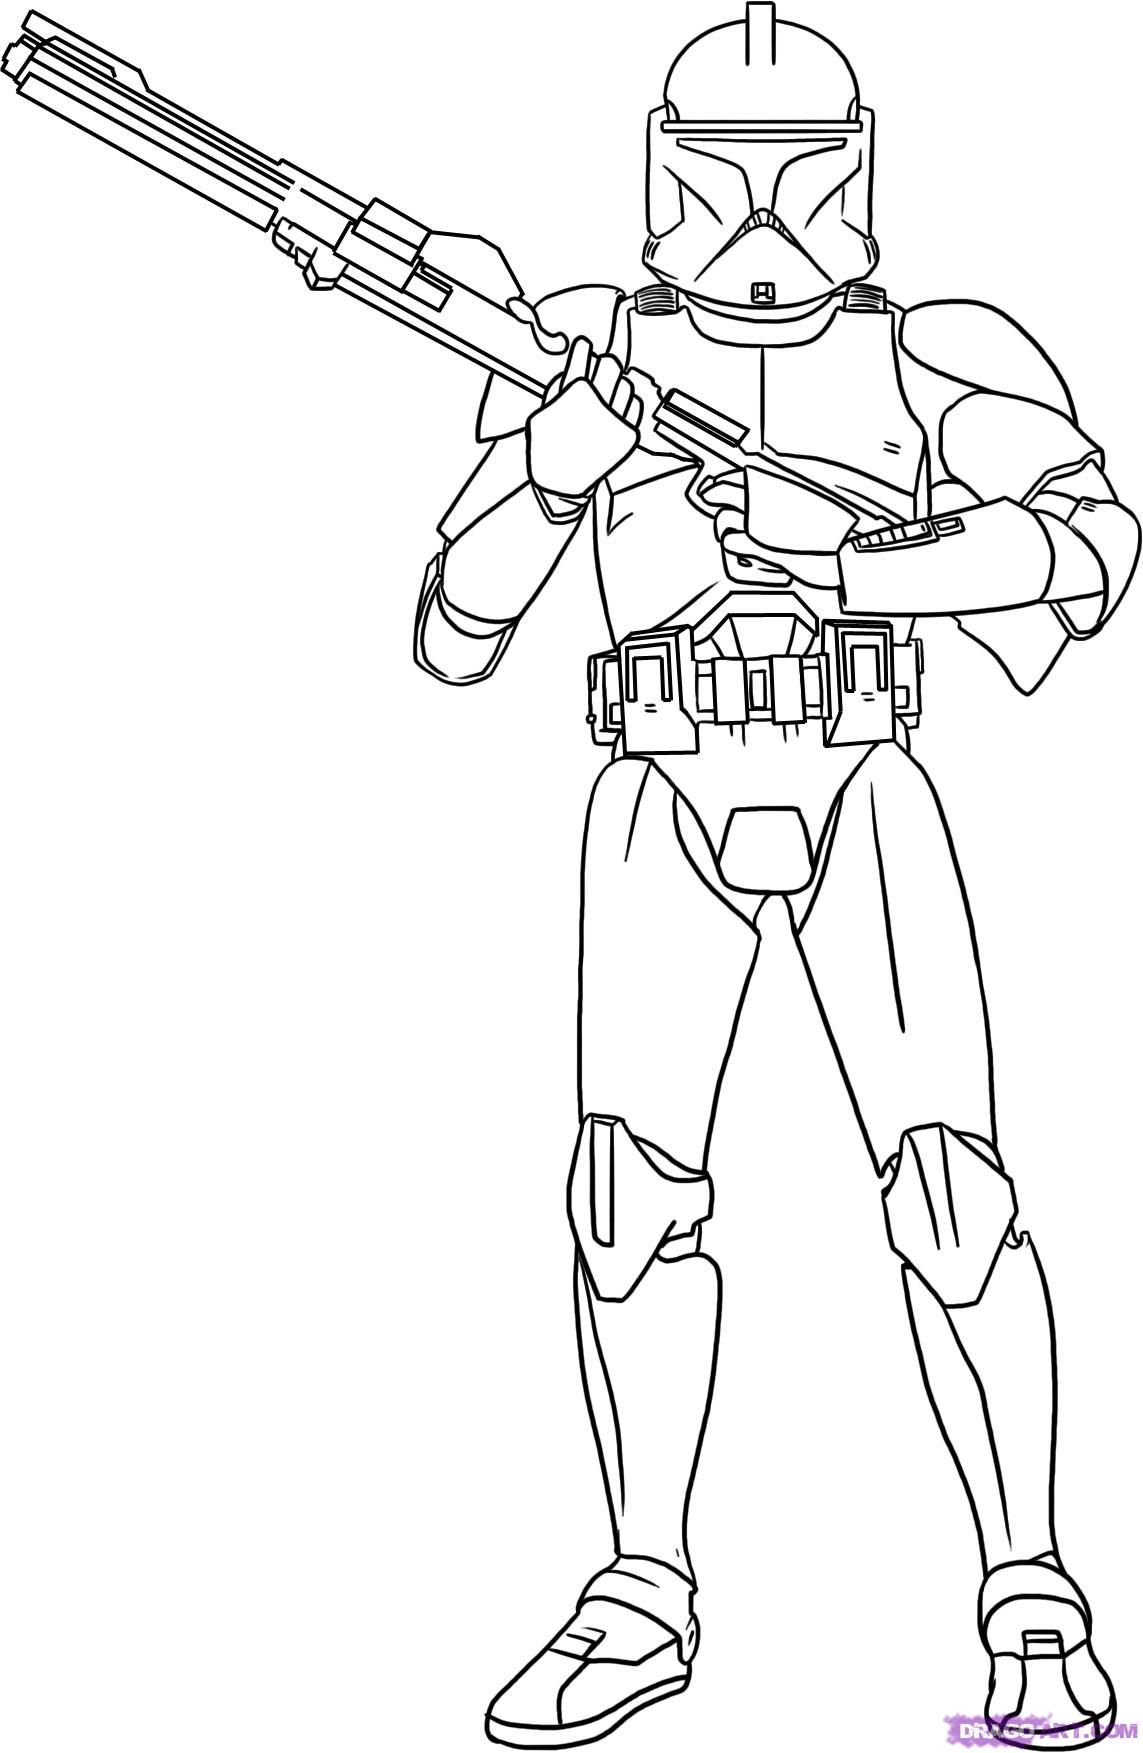 Star Wars Coloring Pages Free Printable Star Wars Coloring Pages Star Wars Drawings Star Wars Coloring Book Star Wars Coloring Sheet